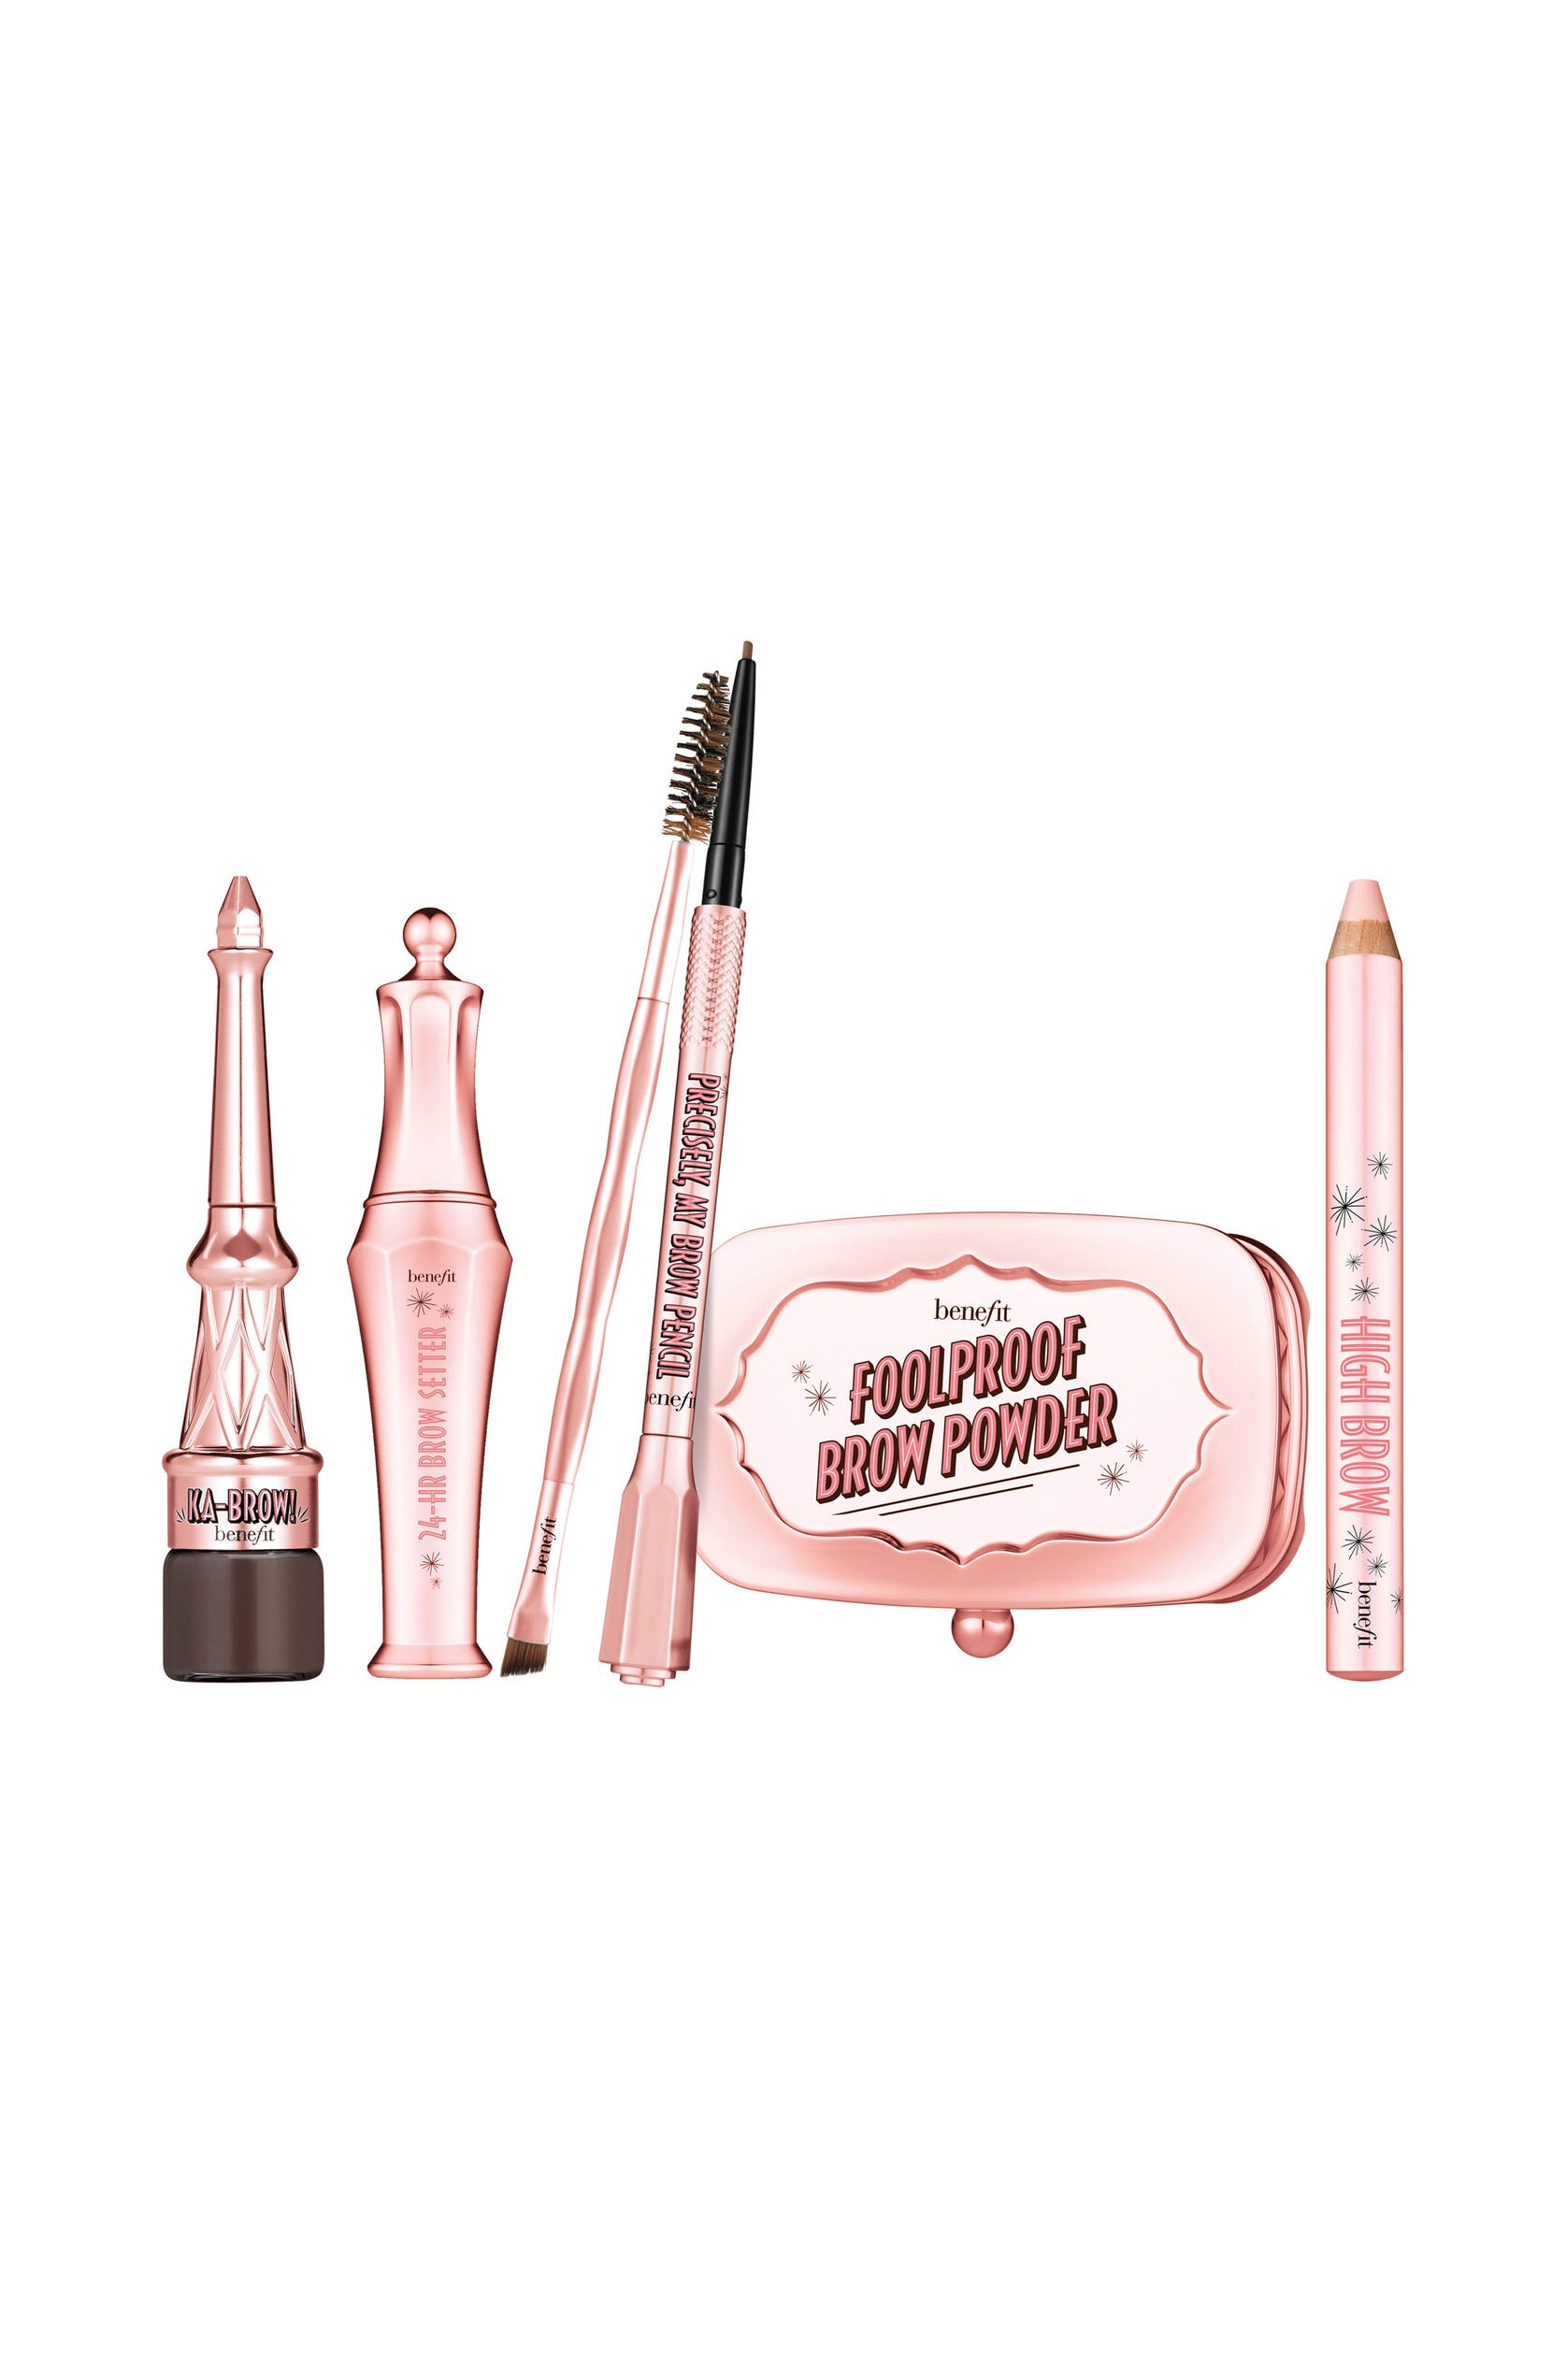 1a5cf9acf79 Benefit Bomb Ass Brows! By Desi Perkins Set ($126 Value)   Nordstrom